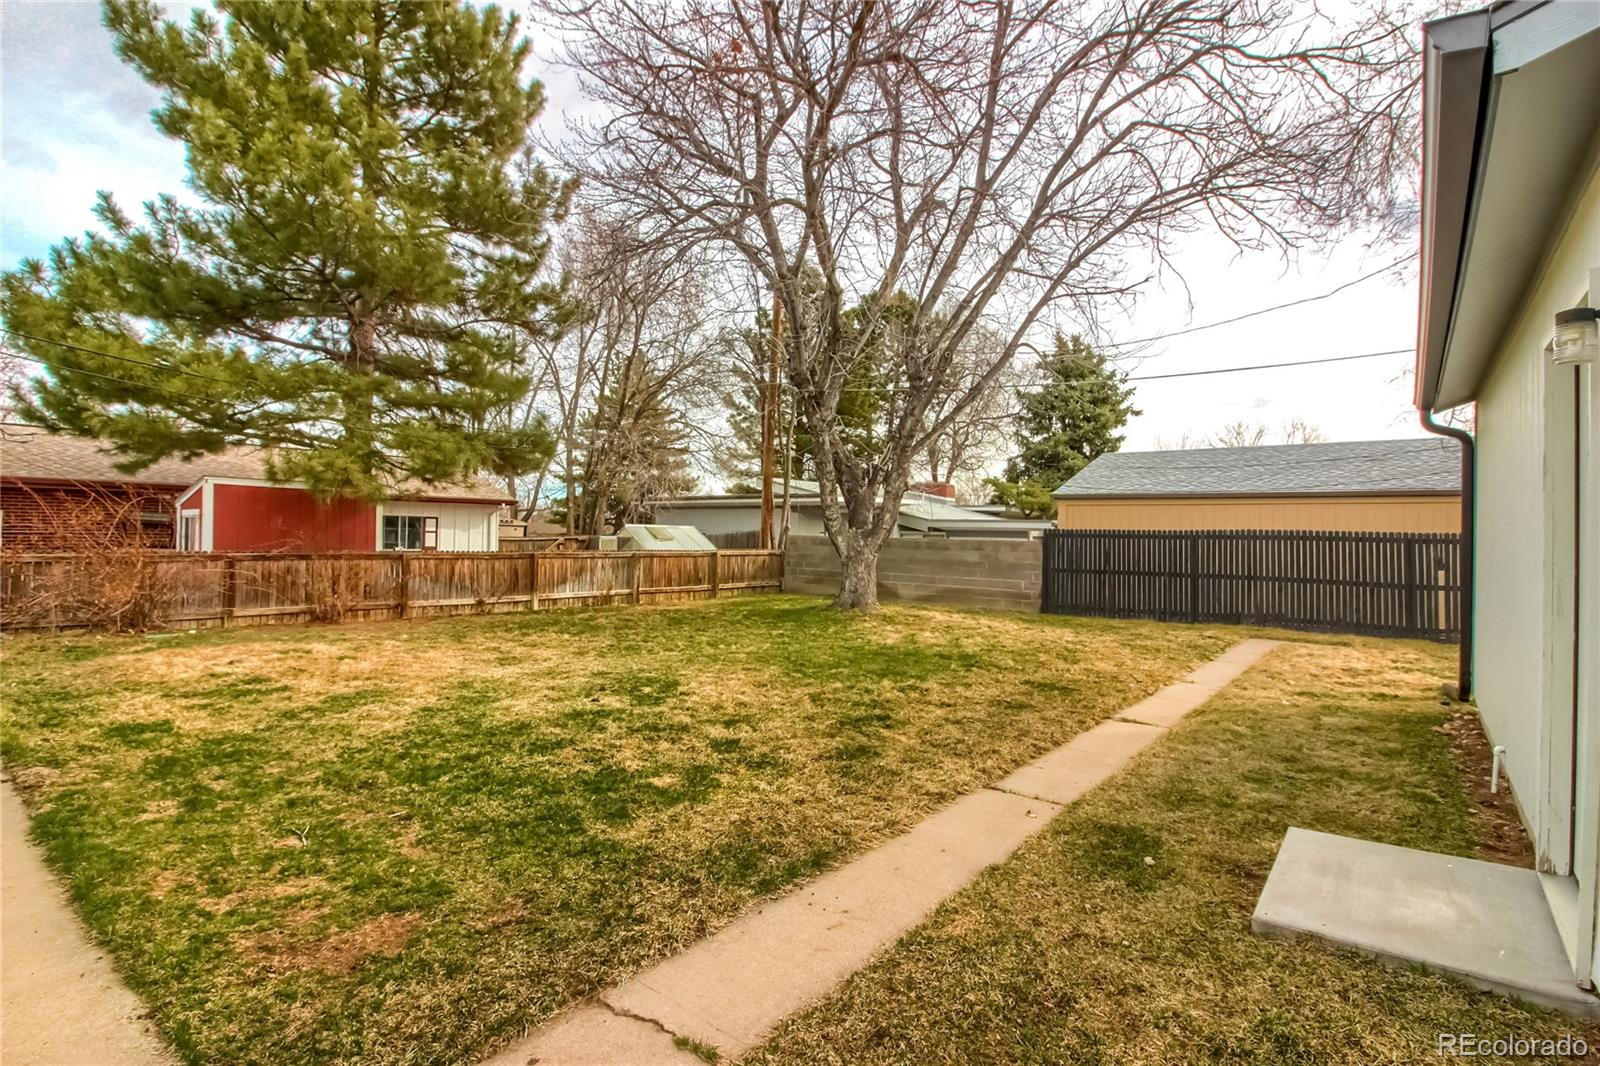 MLS# 5923715 - 34 - 1830 Lee Street, Lakewood, CO 80215